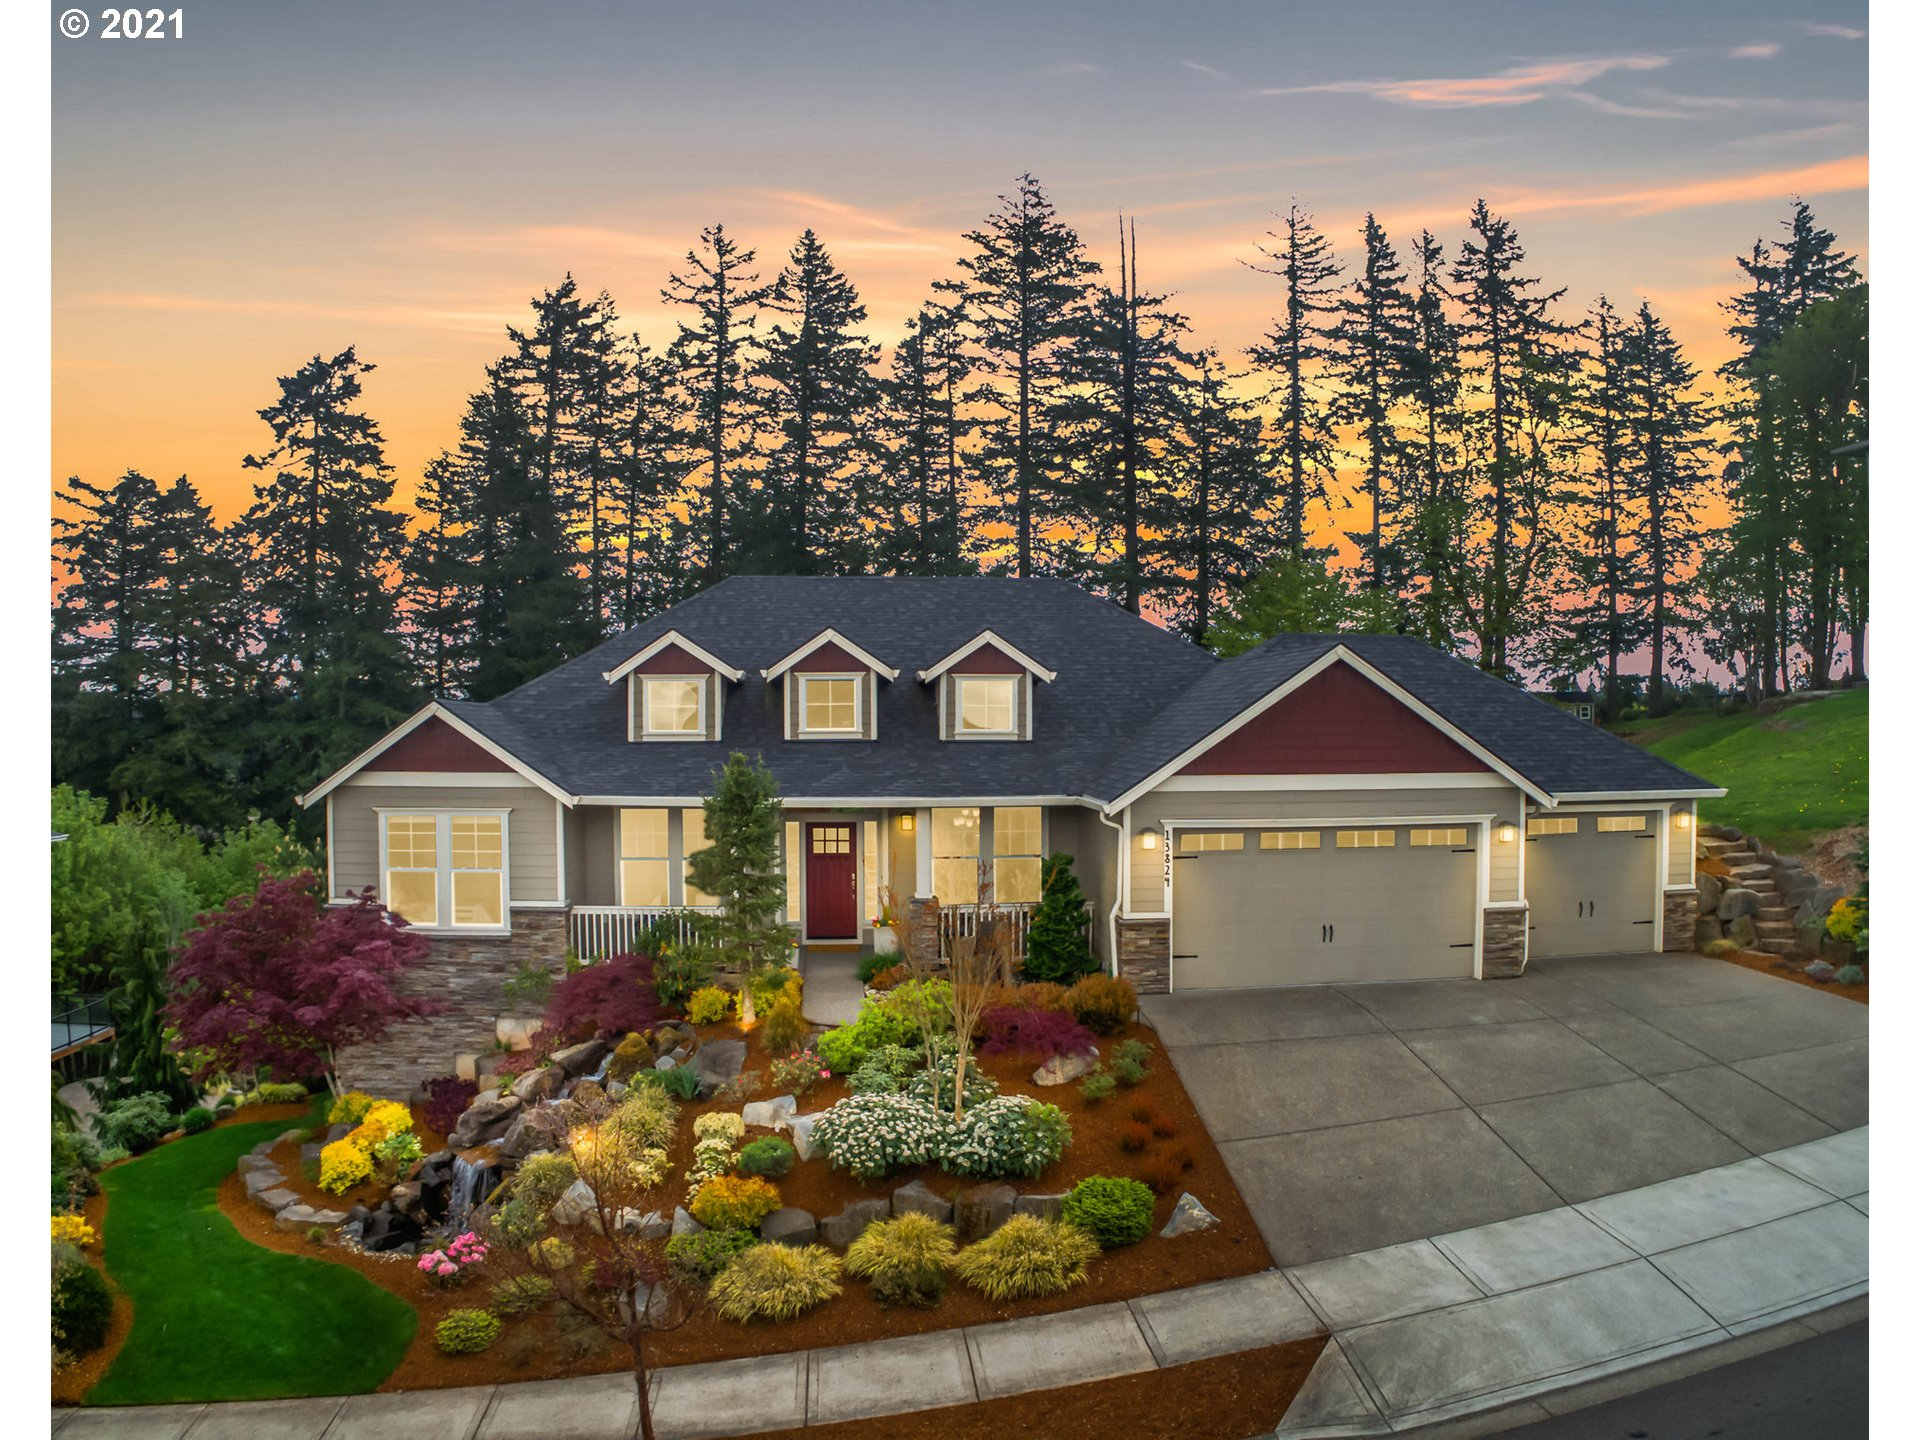 Gorgeous custom home, on a beautifully landscaped .57 acre lot, in highly coveted Stone Ridge Summit! Desirable plan offers light & open great room w/vaulted ceiling, tall windows, formal dining, and nook. Lower level, w/separate entrance/kitchenette, is a perfect multi-gen or bonus/family room. Primary suite on the main, w/tray ceiling, and French doors to private deck. Newer flooring/int. paint. Multiple water features, fire pit, and pergola. Greenspace and Mountain Views! This one has it all.